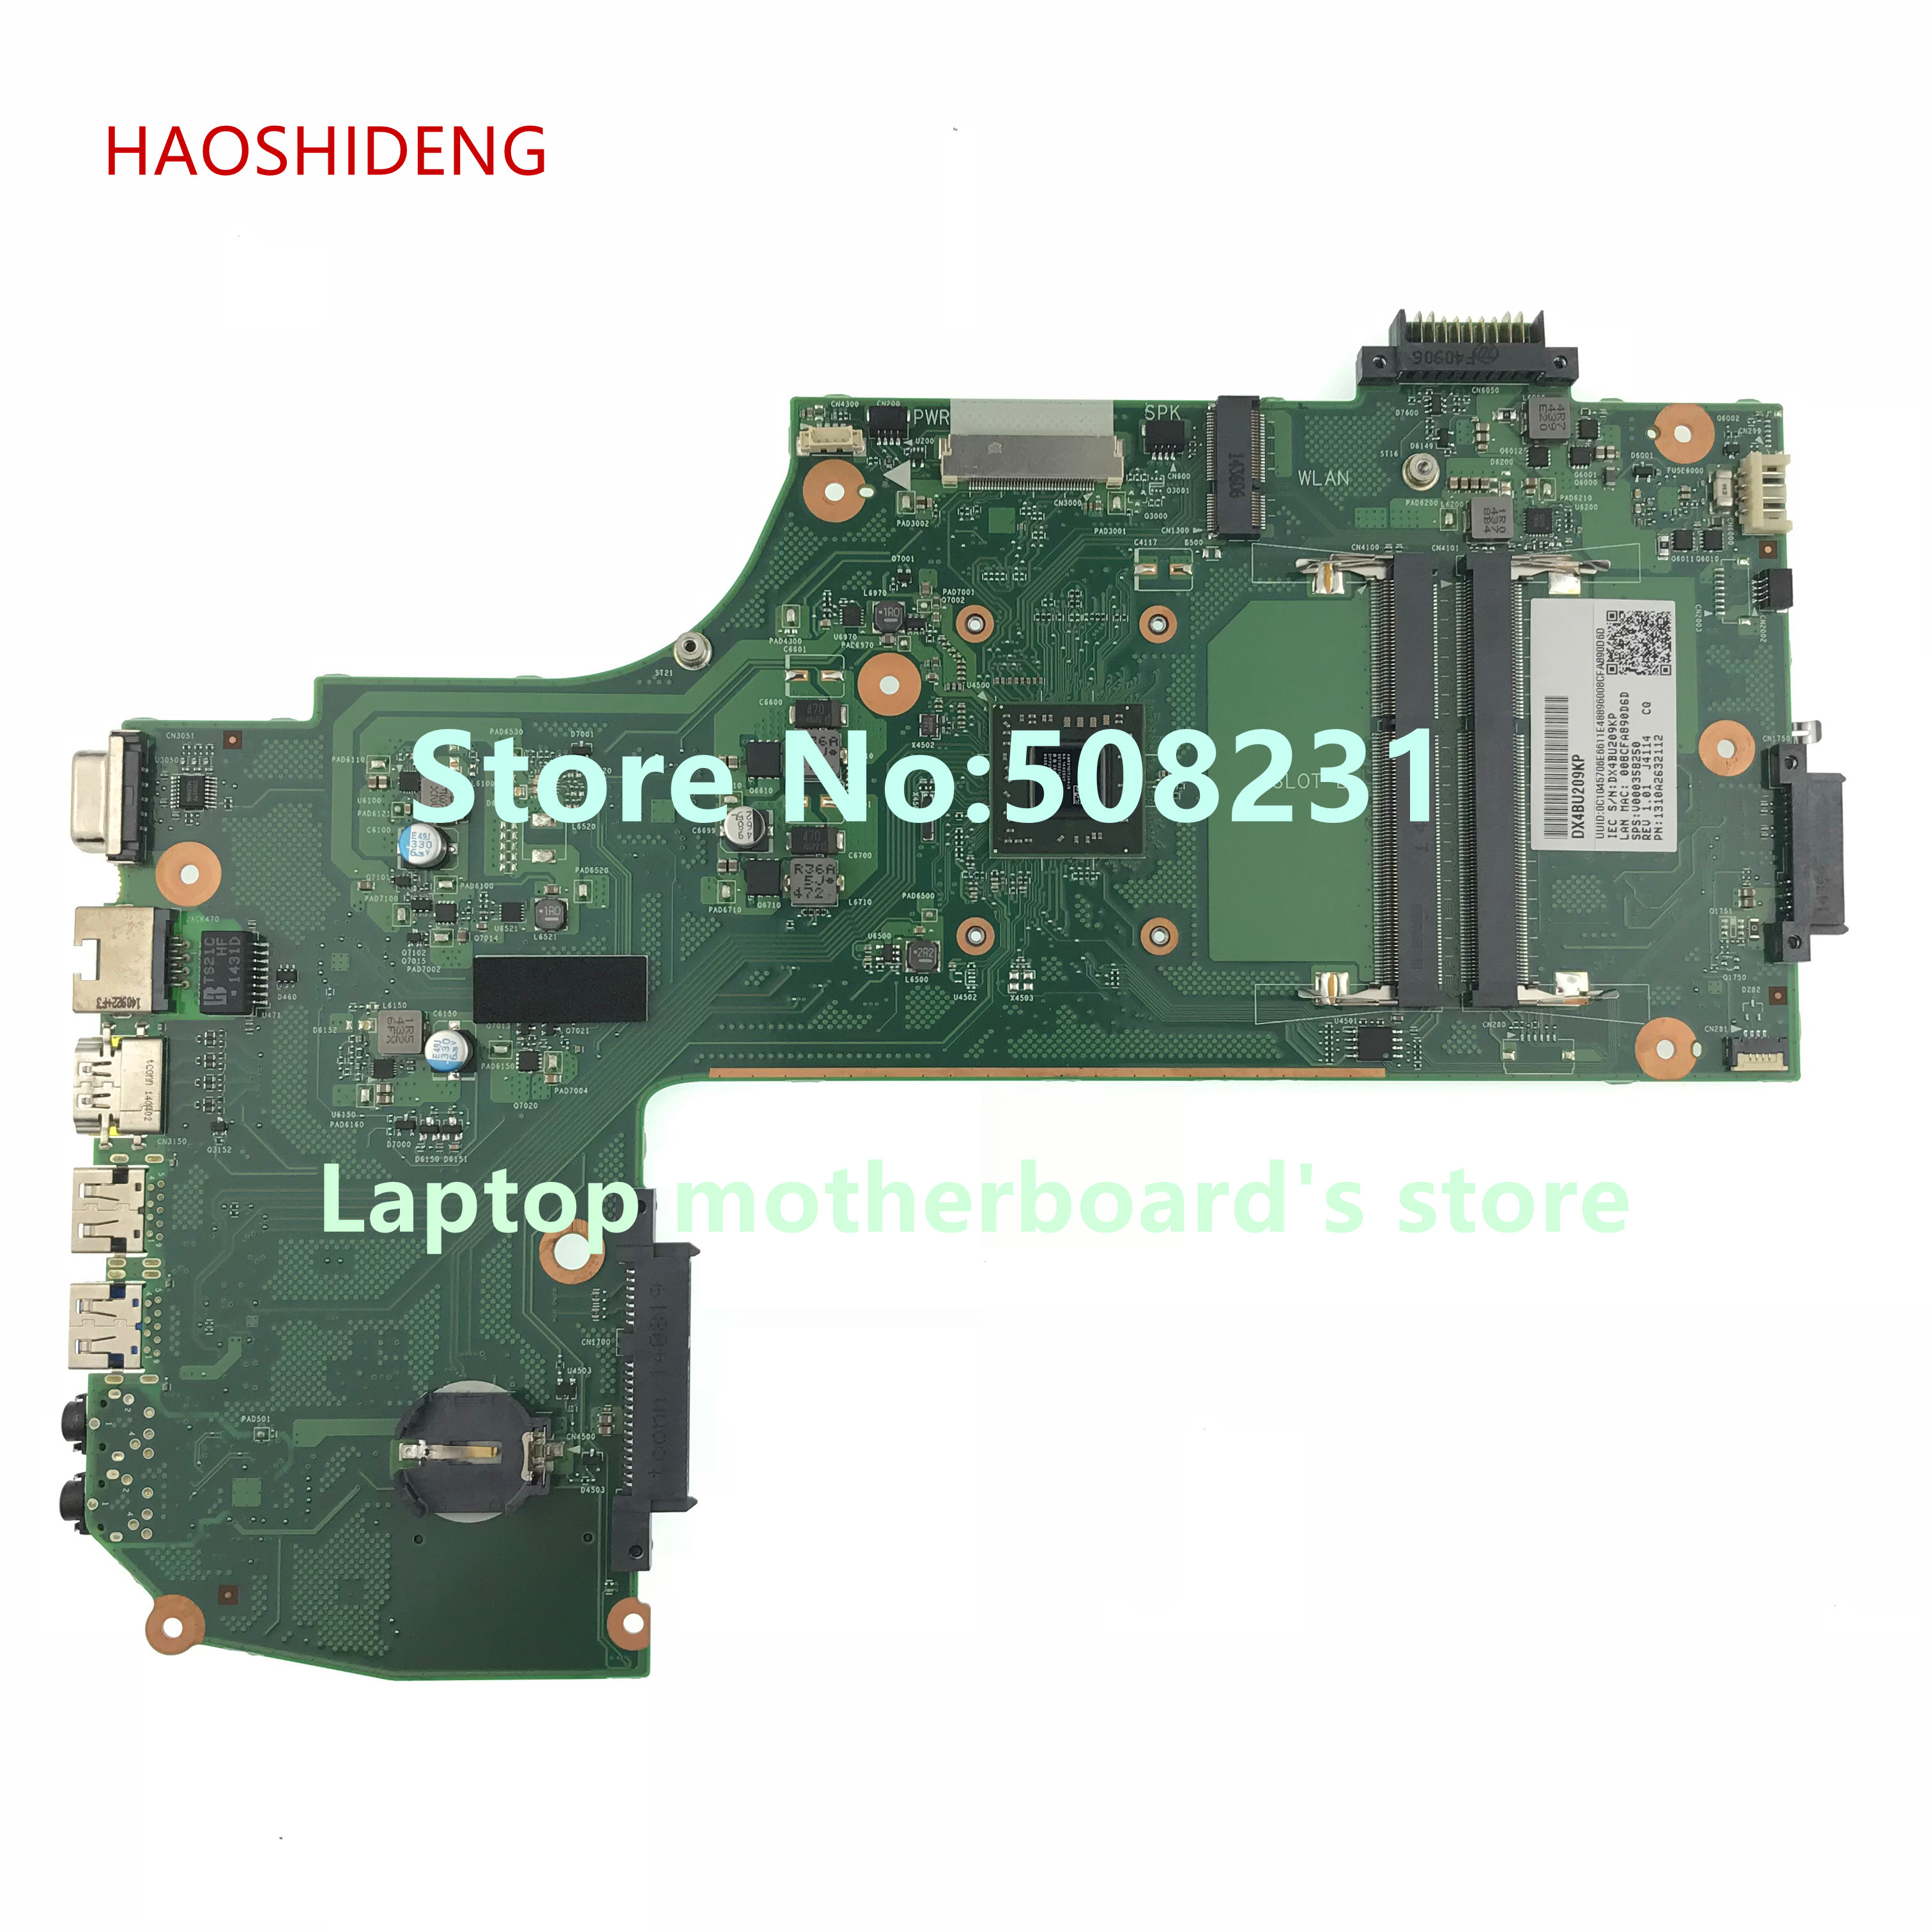 HAOSHIDENG V000358250 For Toshiba Satellite C75D C75D-B C75D-B7260 Motherboard AR10AN-6050A2632101-MB-A01 fully Tested